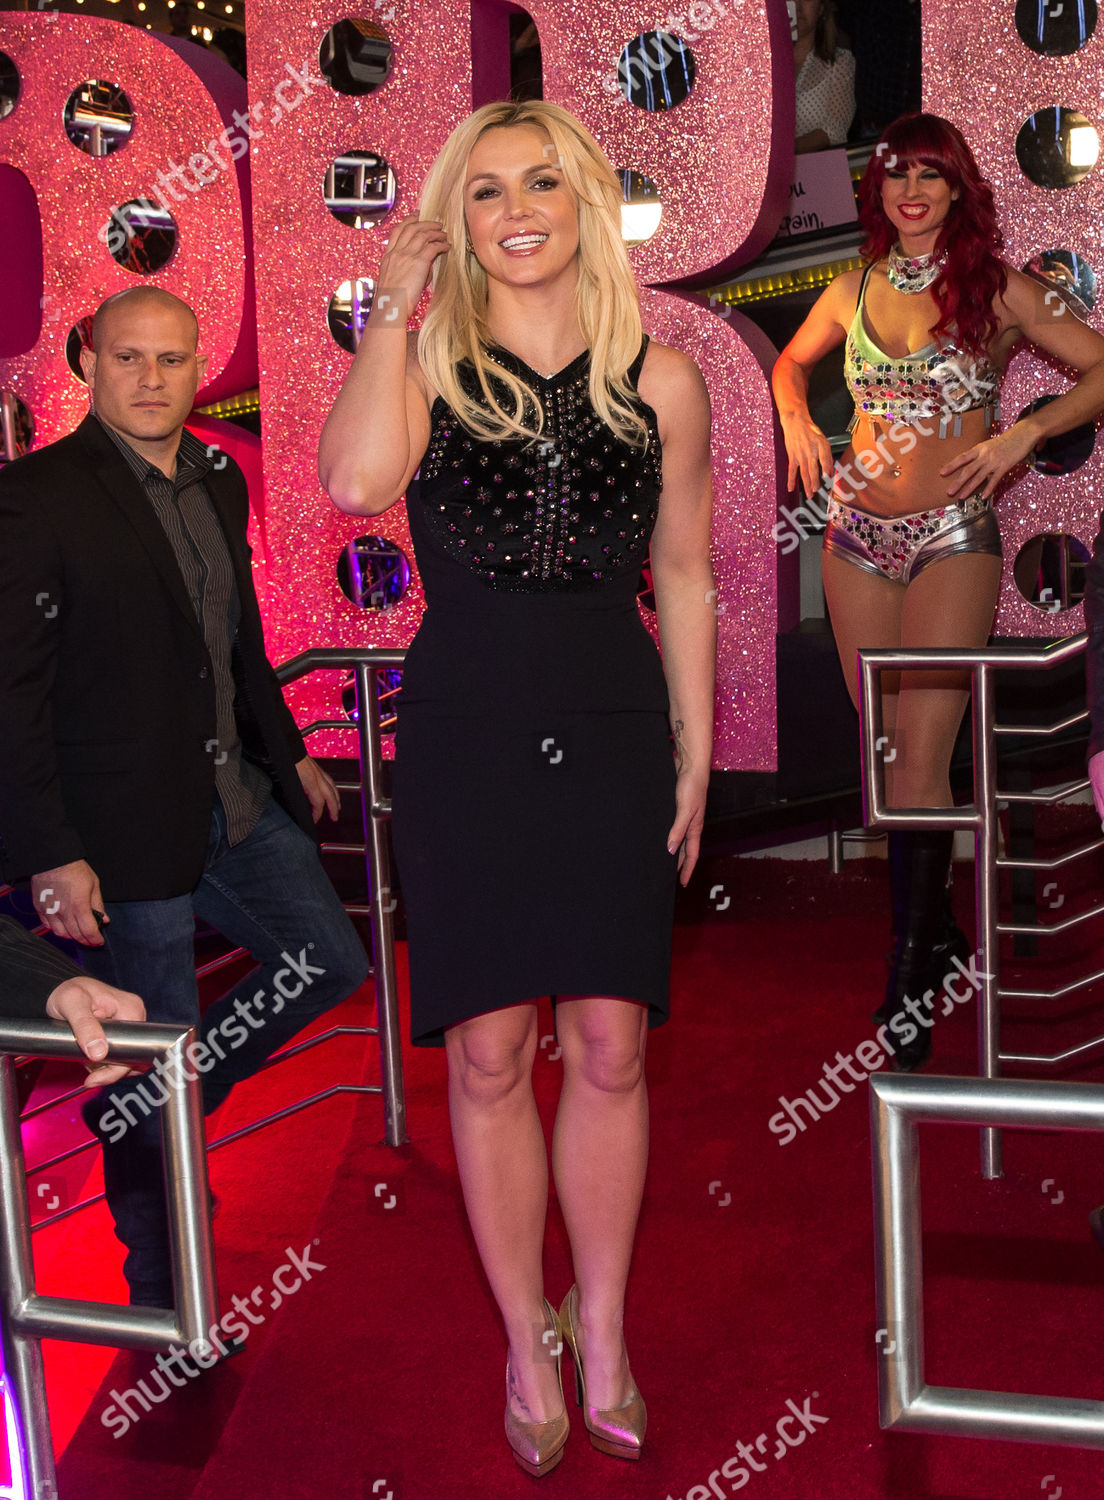 britney-spears-at-planet-hollywood-resort-and-casino-las-vegas-america-shutterstock-editorial-3406313c.jpg